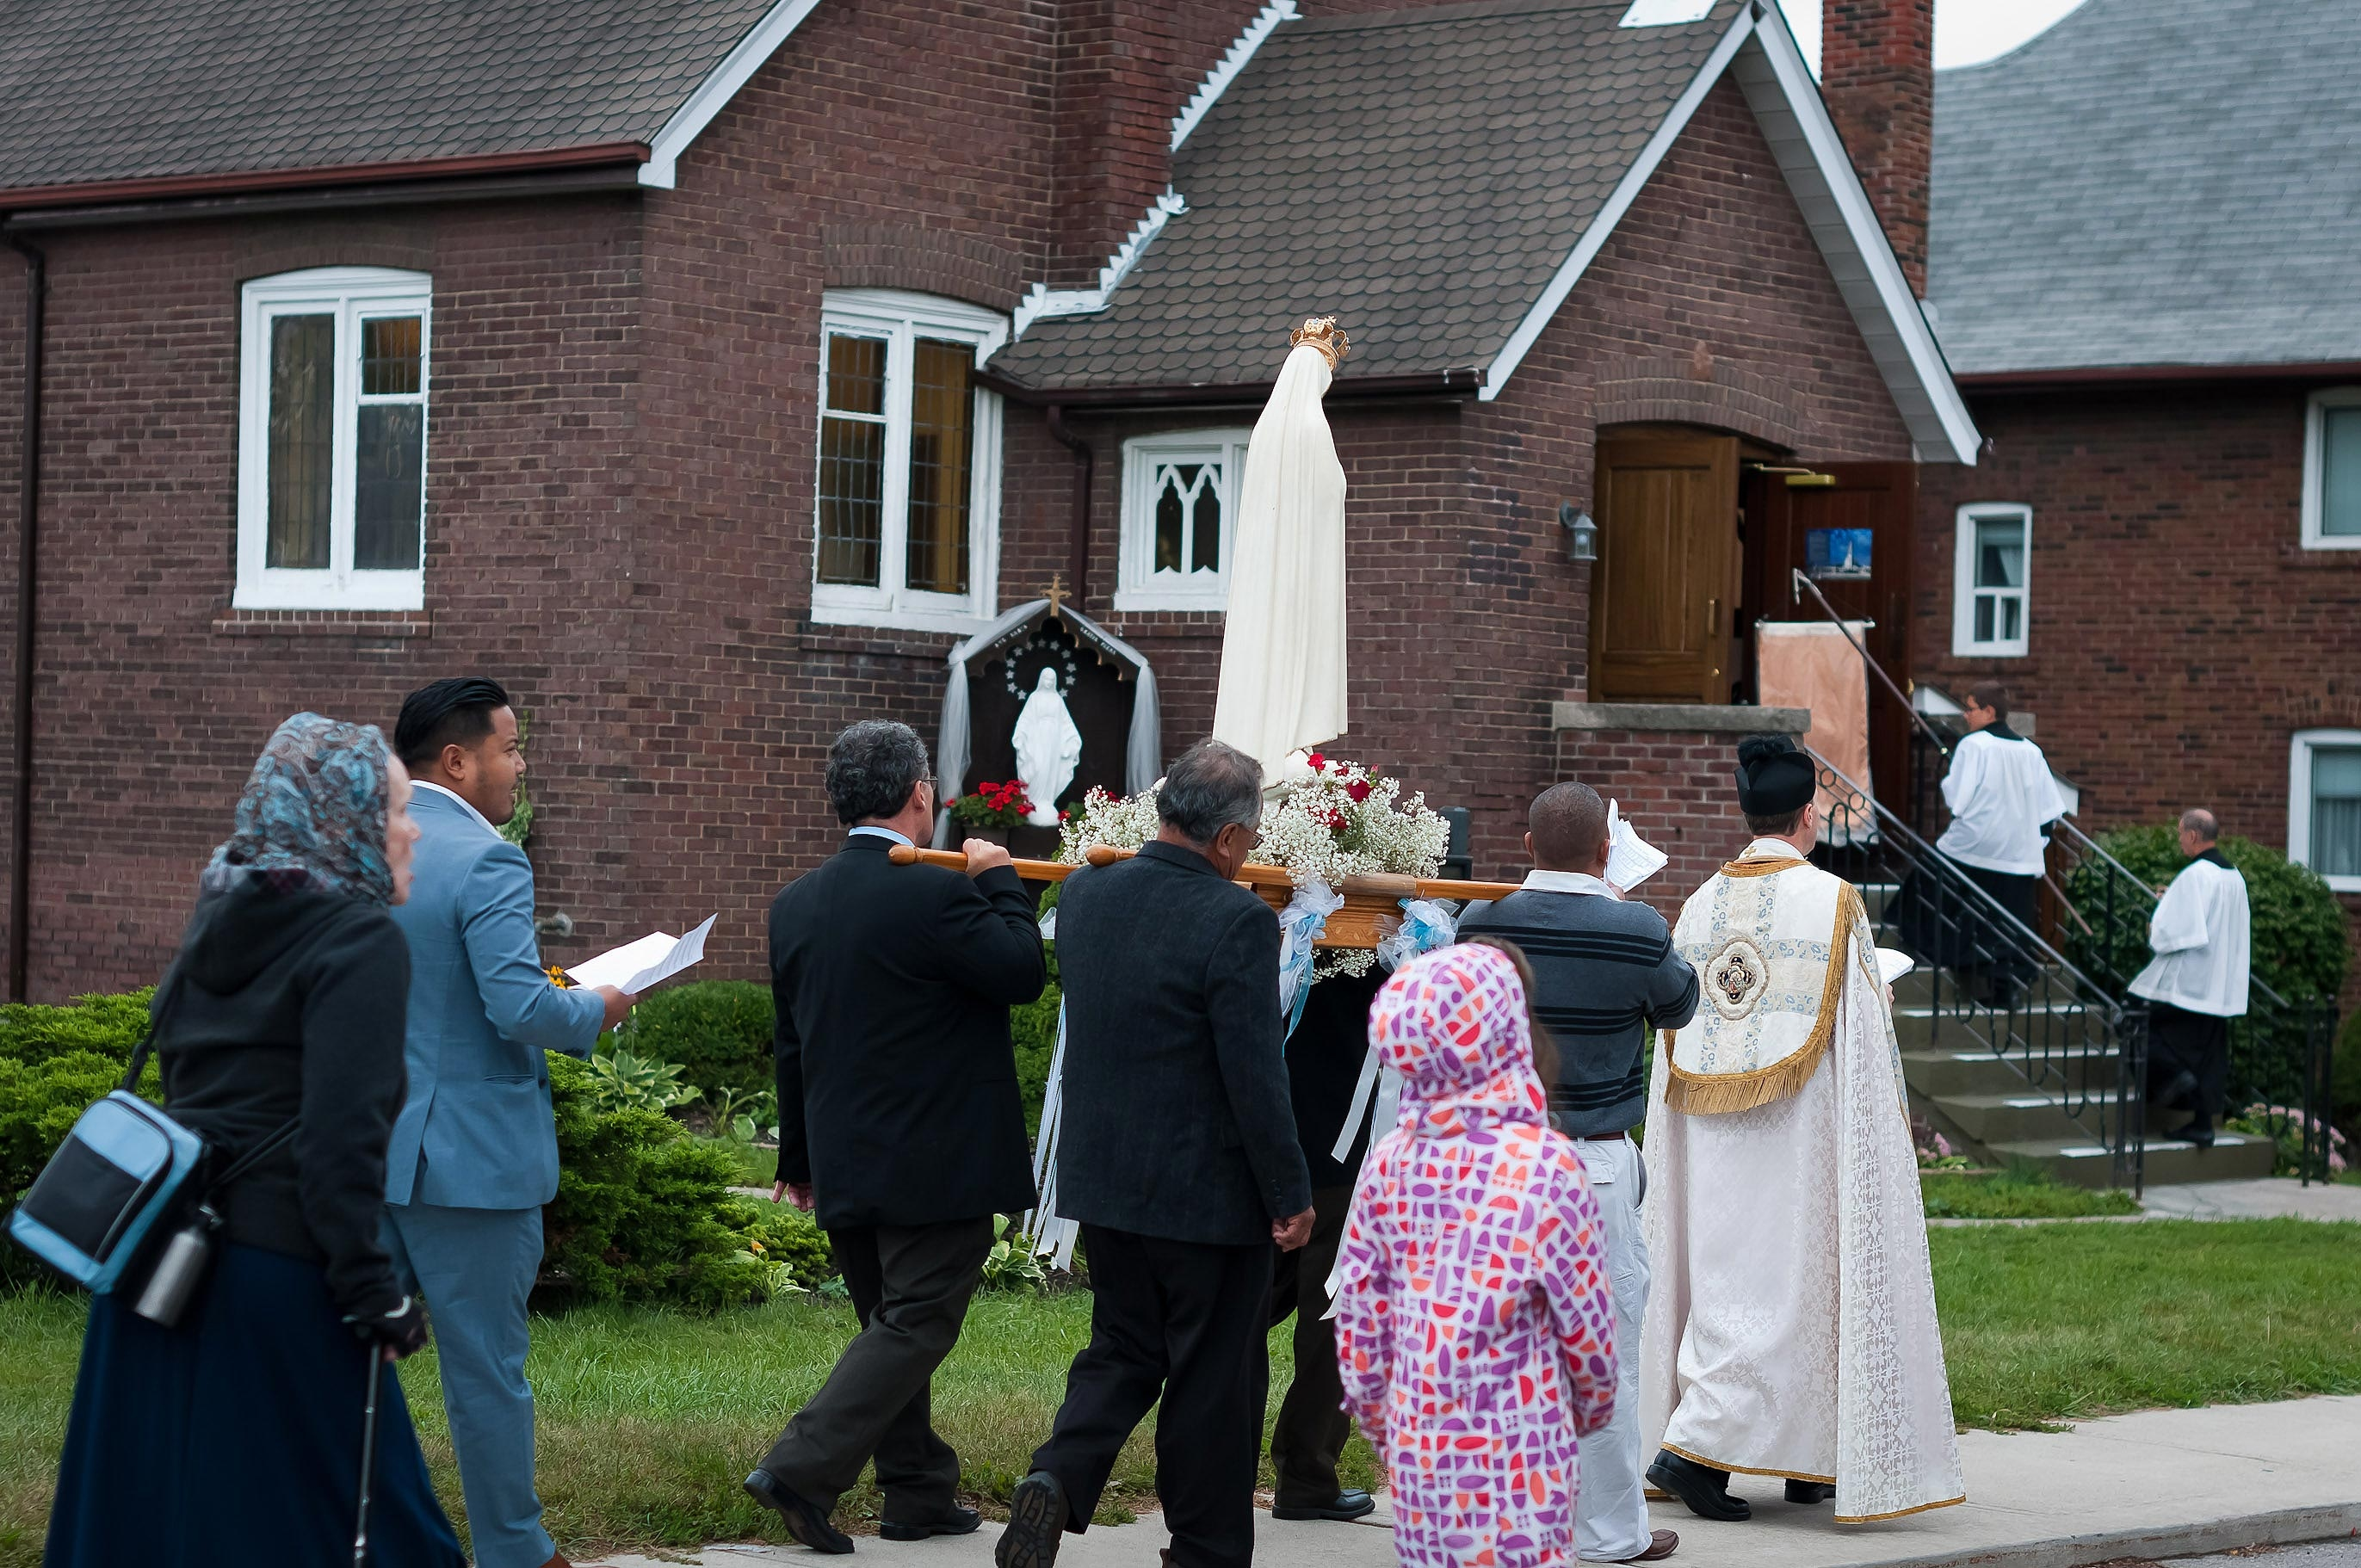 Vox Cantoris: SSPX is coming home soon - whether some like